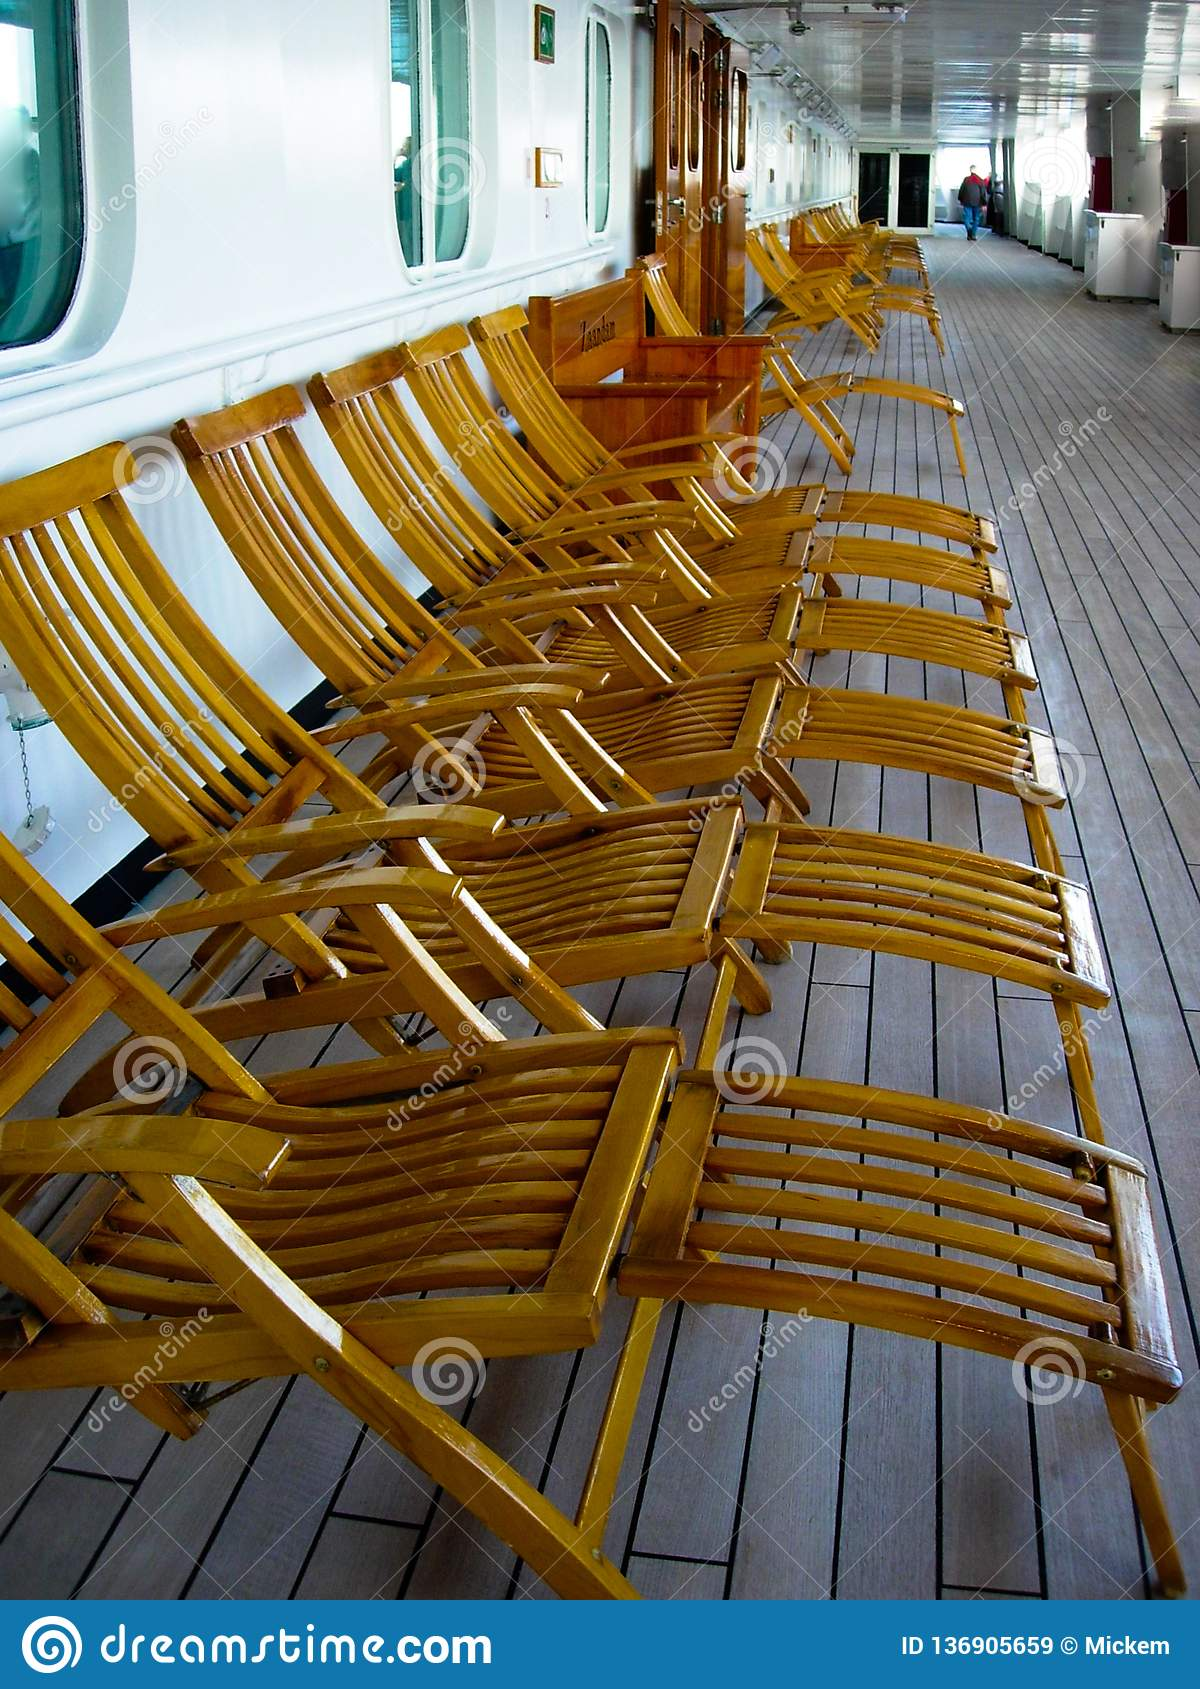 Vintage Wooden Cruise Ship Deck Chairs Sit Empty Stock ...